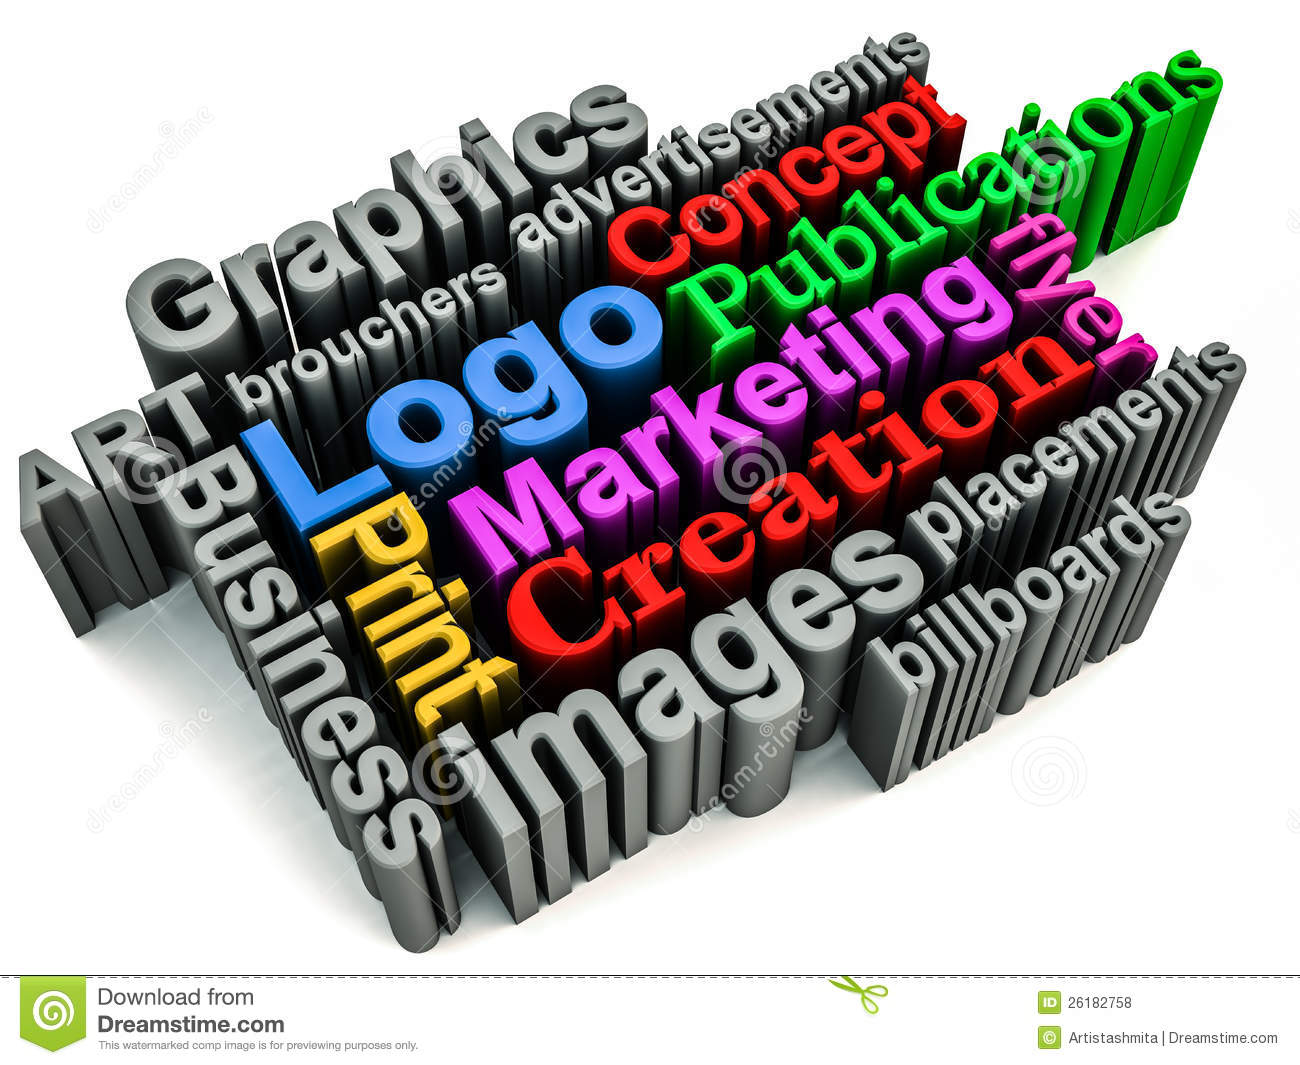 What is marketing strategy in a business plan